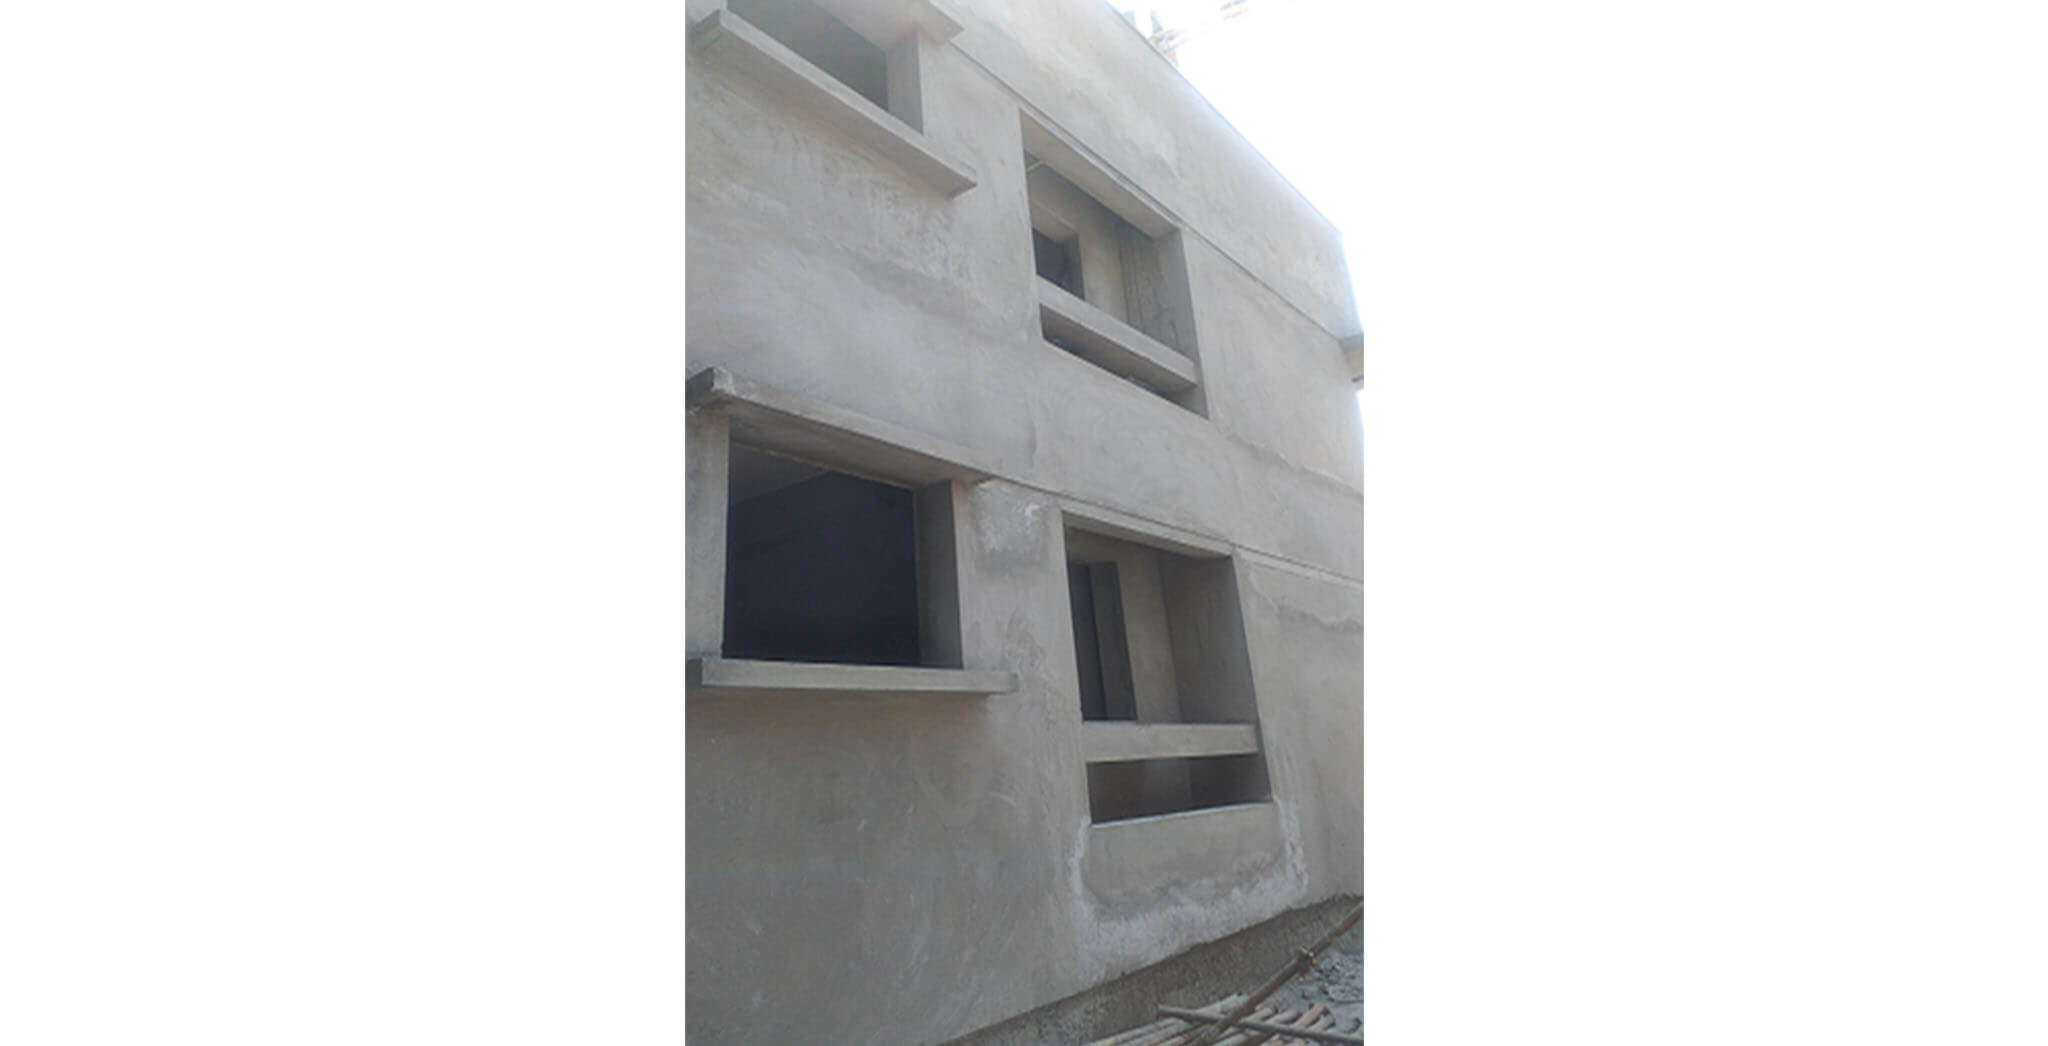 Feb 2021 - Podium view: A Block—External plastering